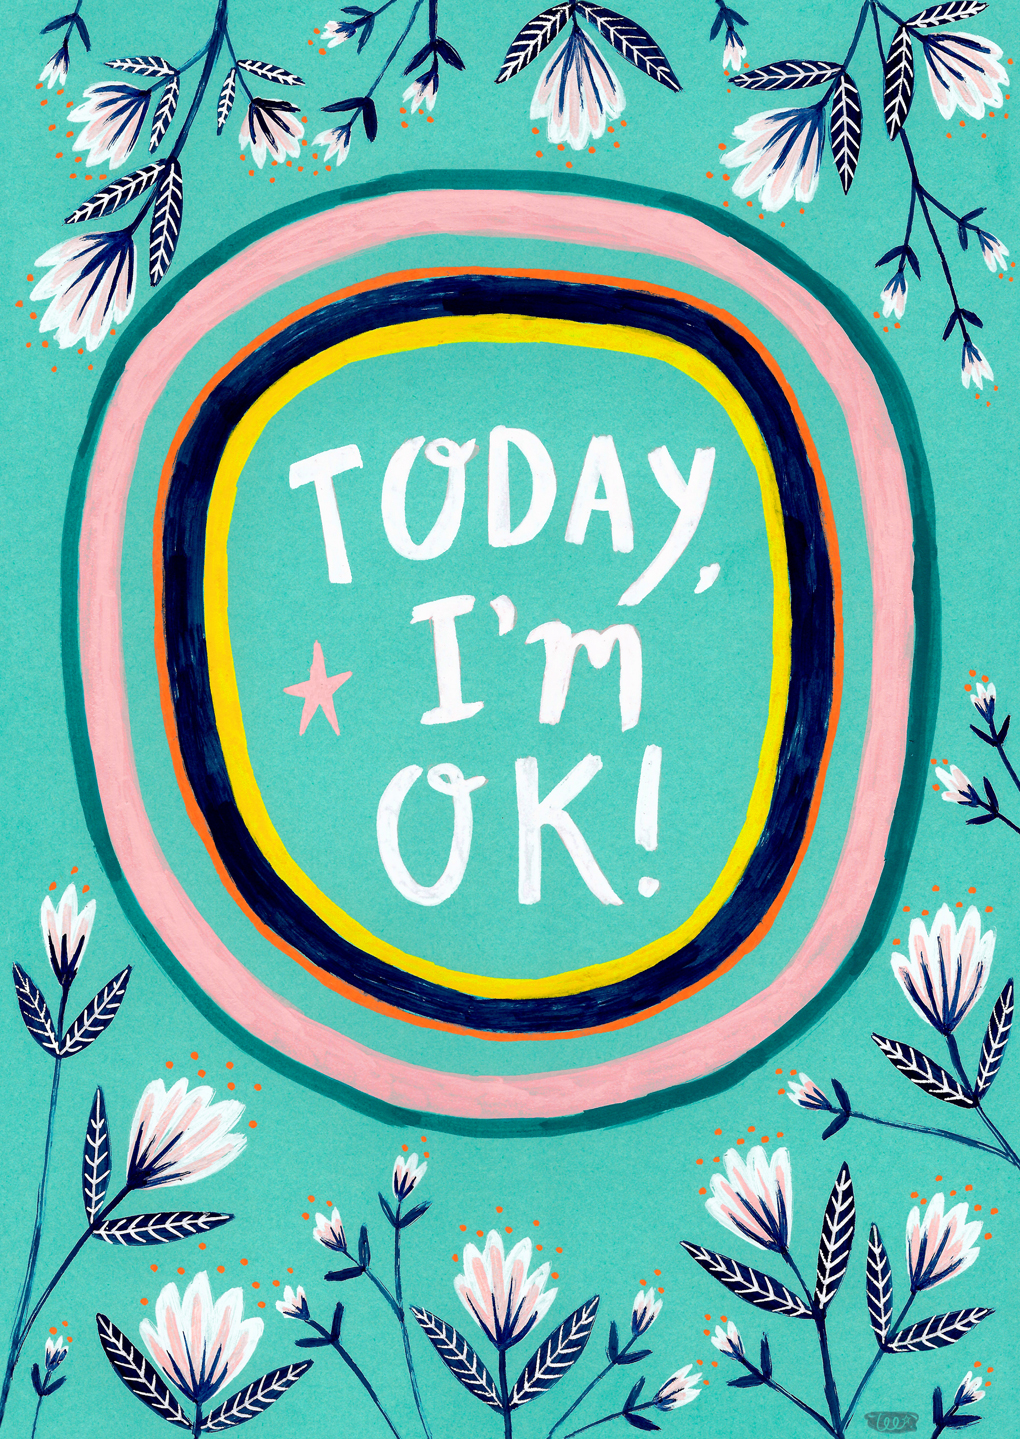 Today, I'm OK · Lee Foster-Wilson